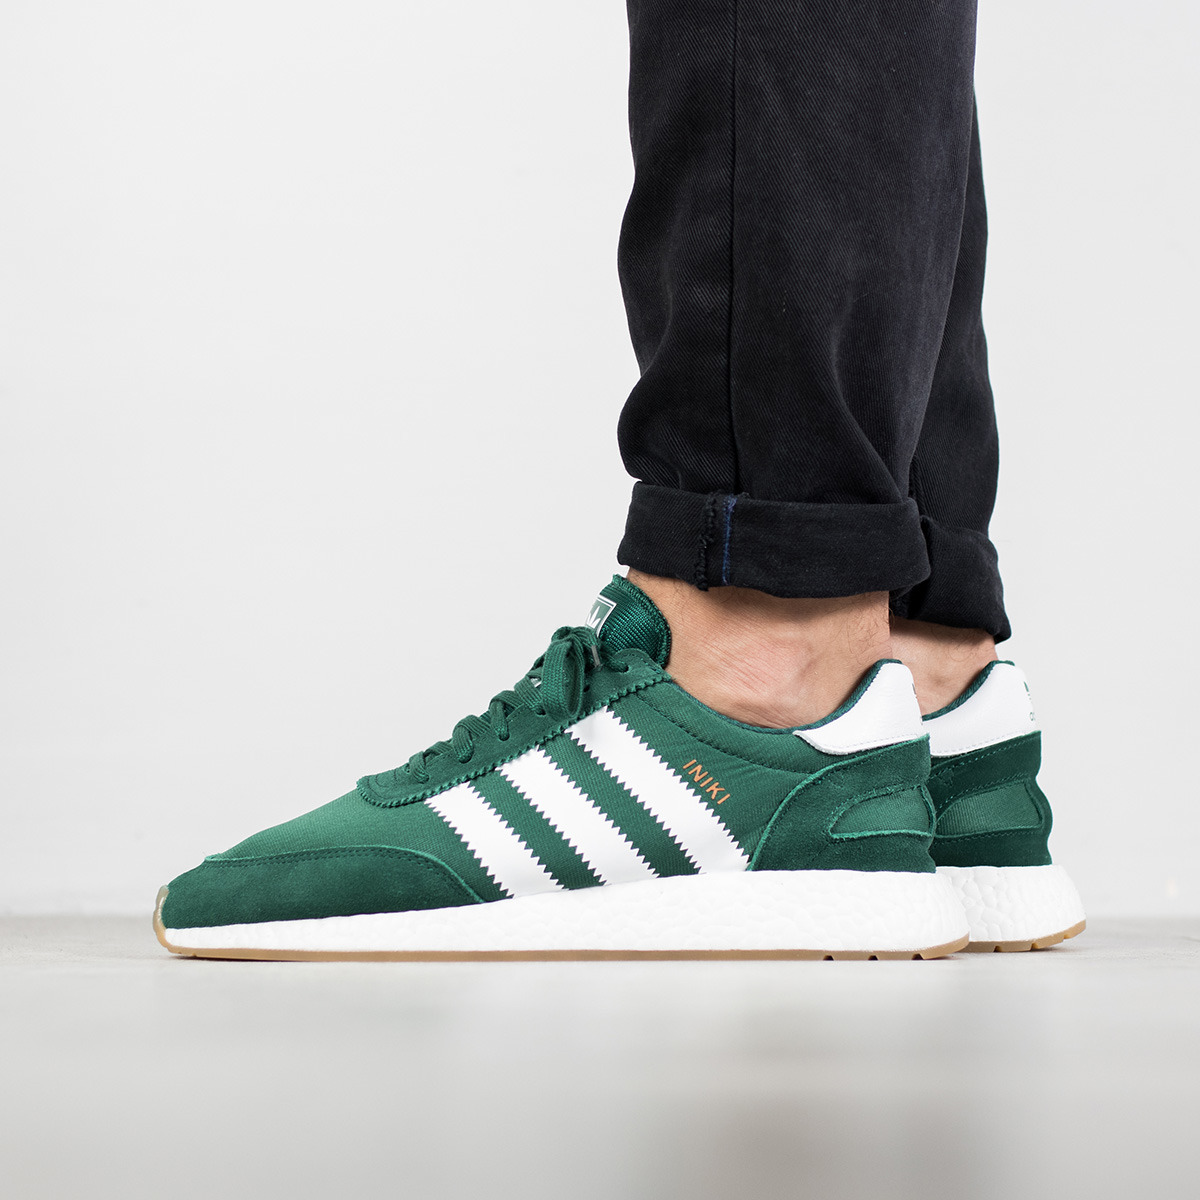 Adidas Iniki Runner - BY9726